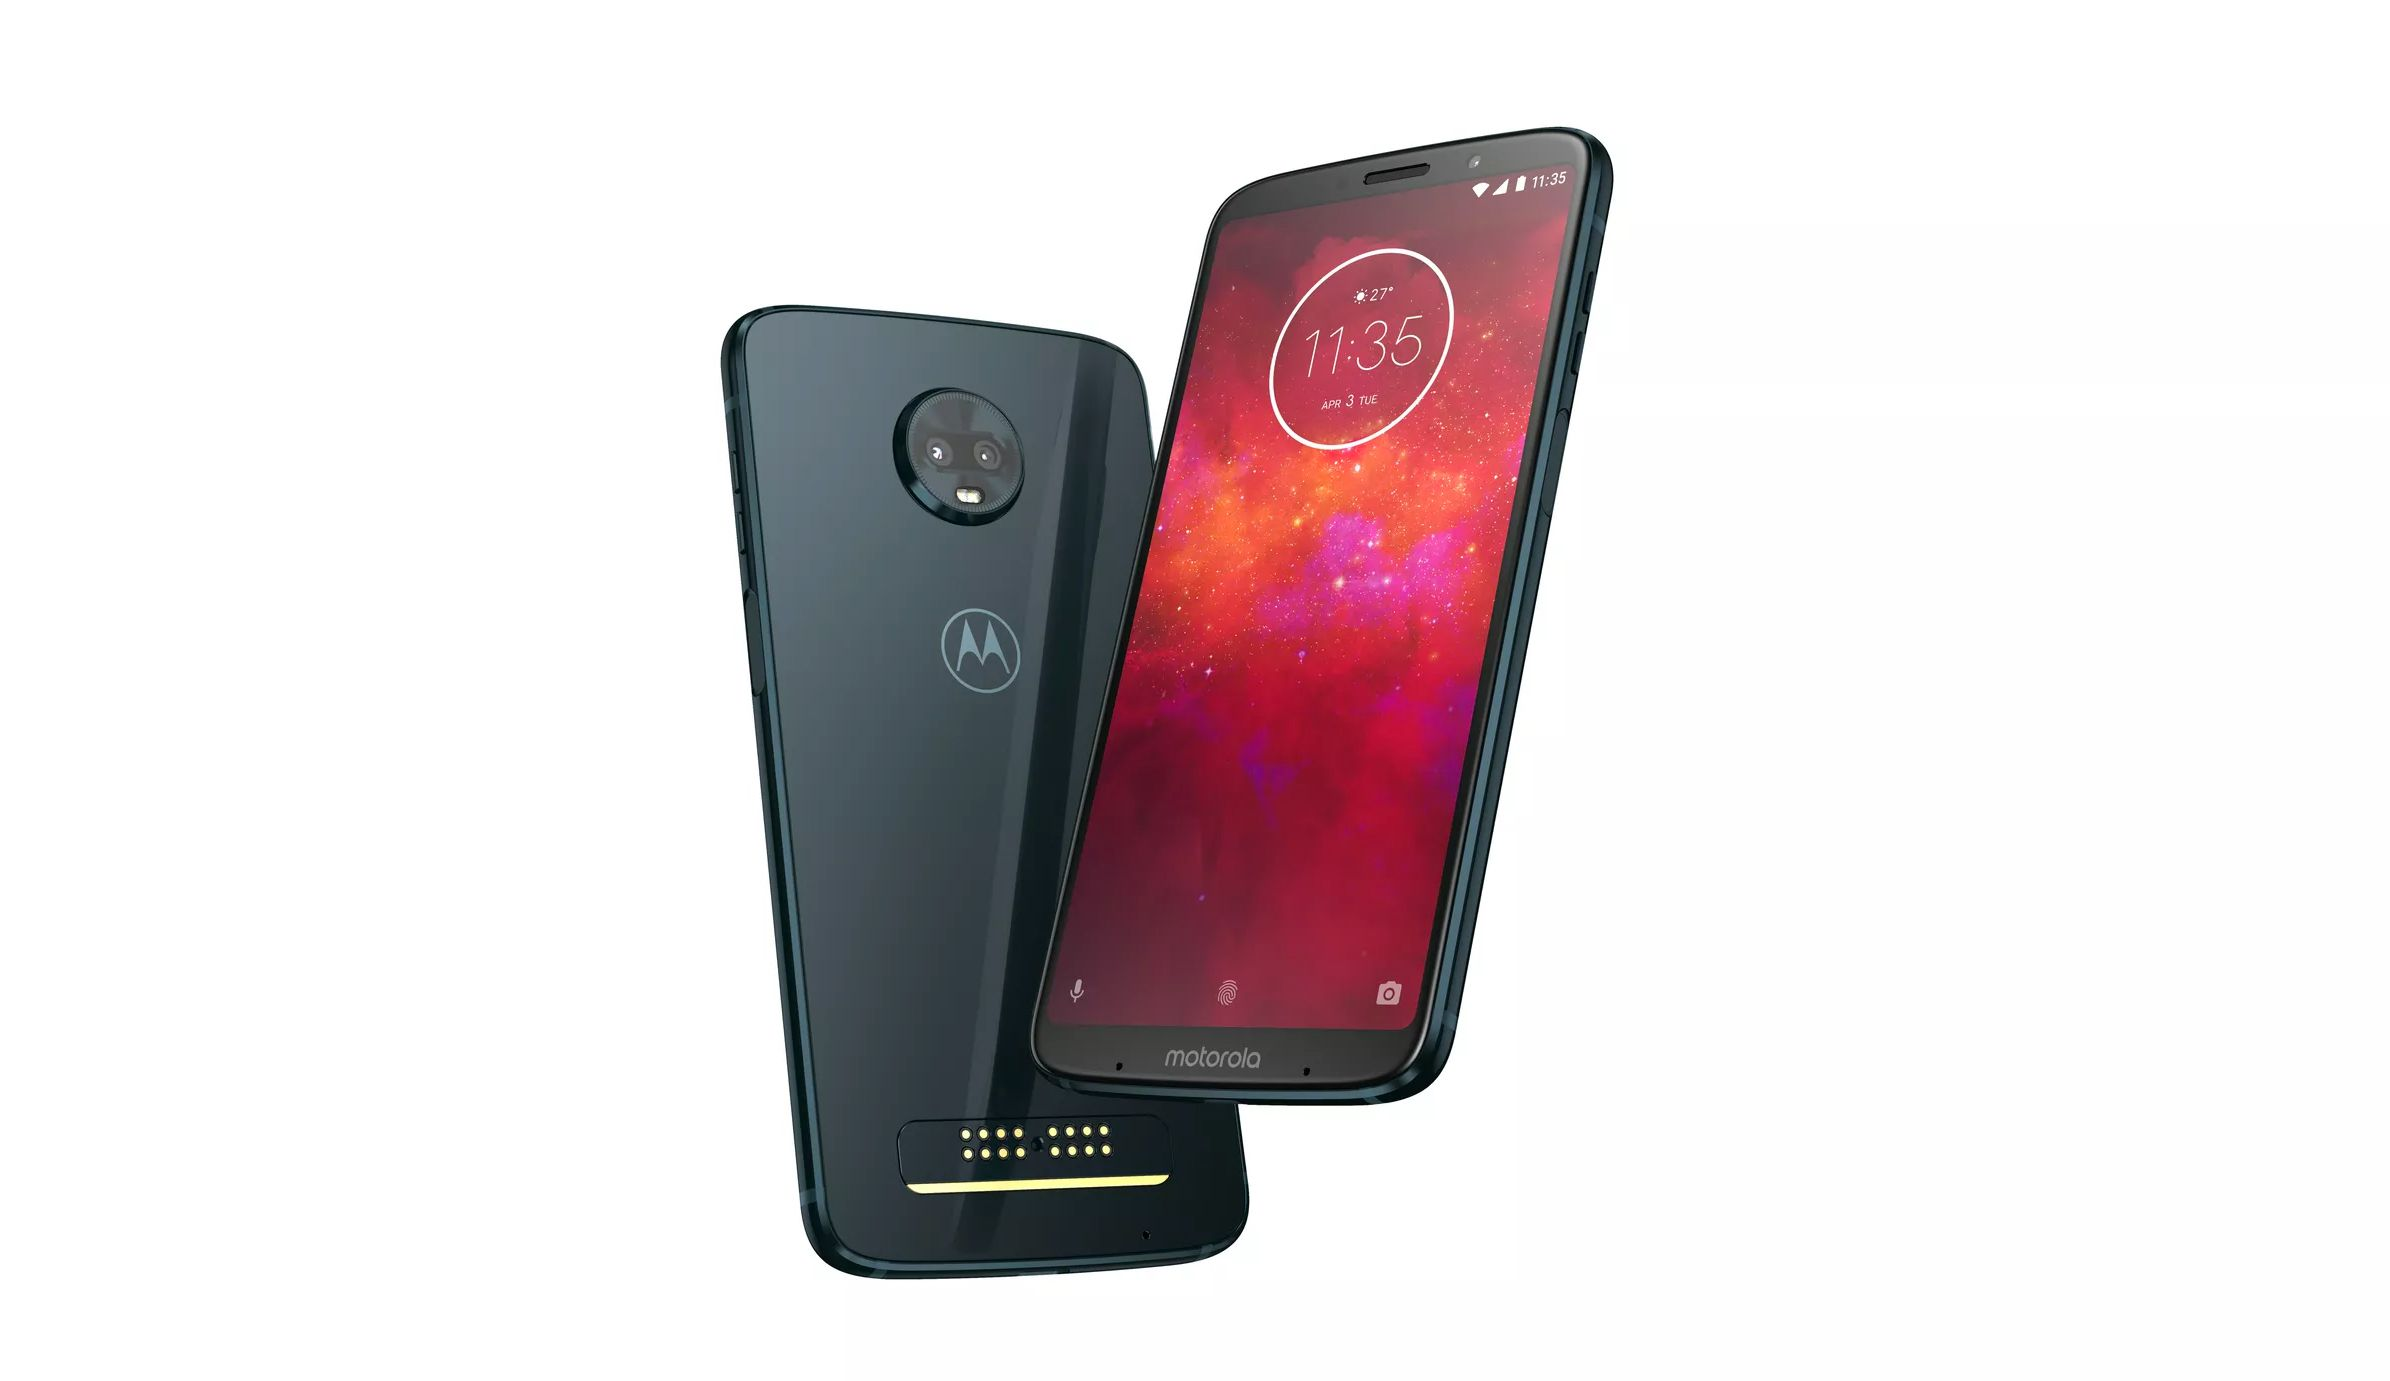 Moto Z3 smartphone from the front and back.